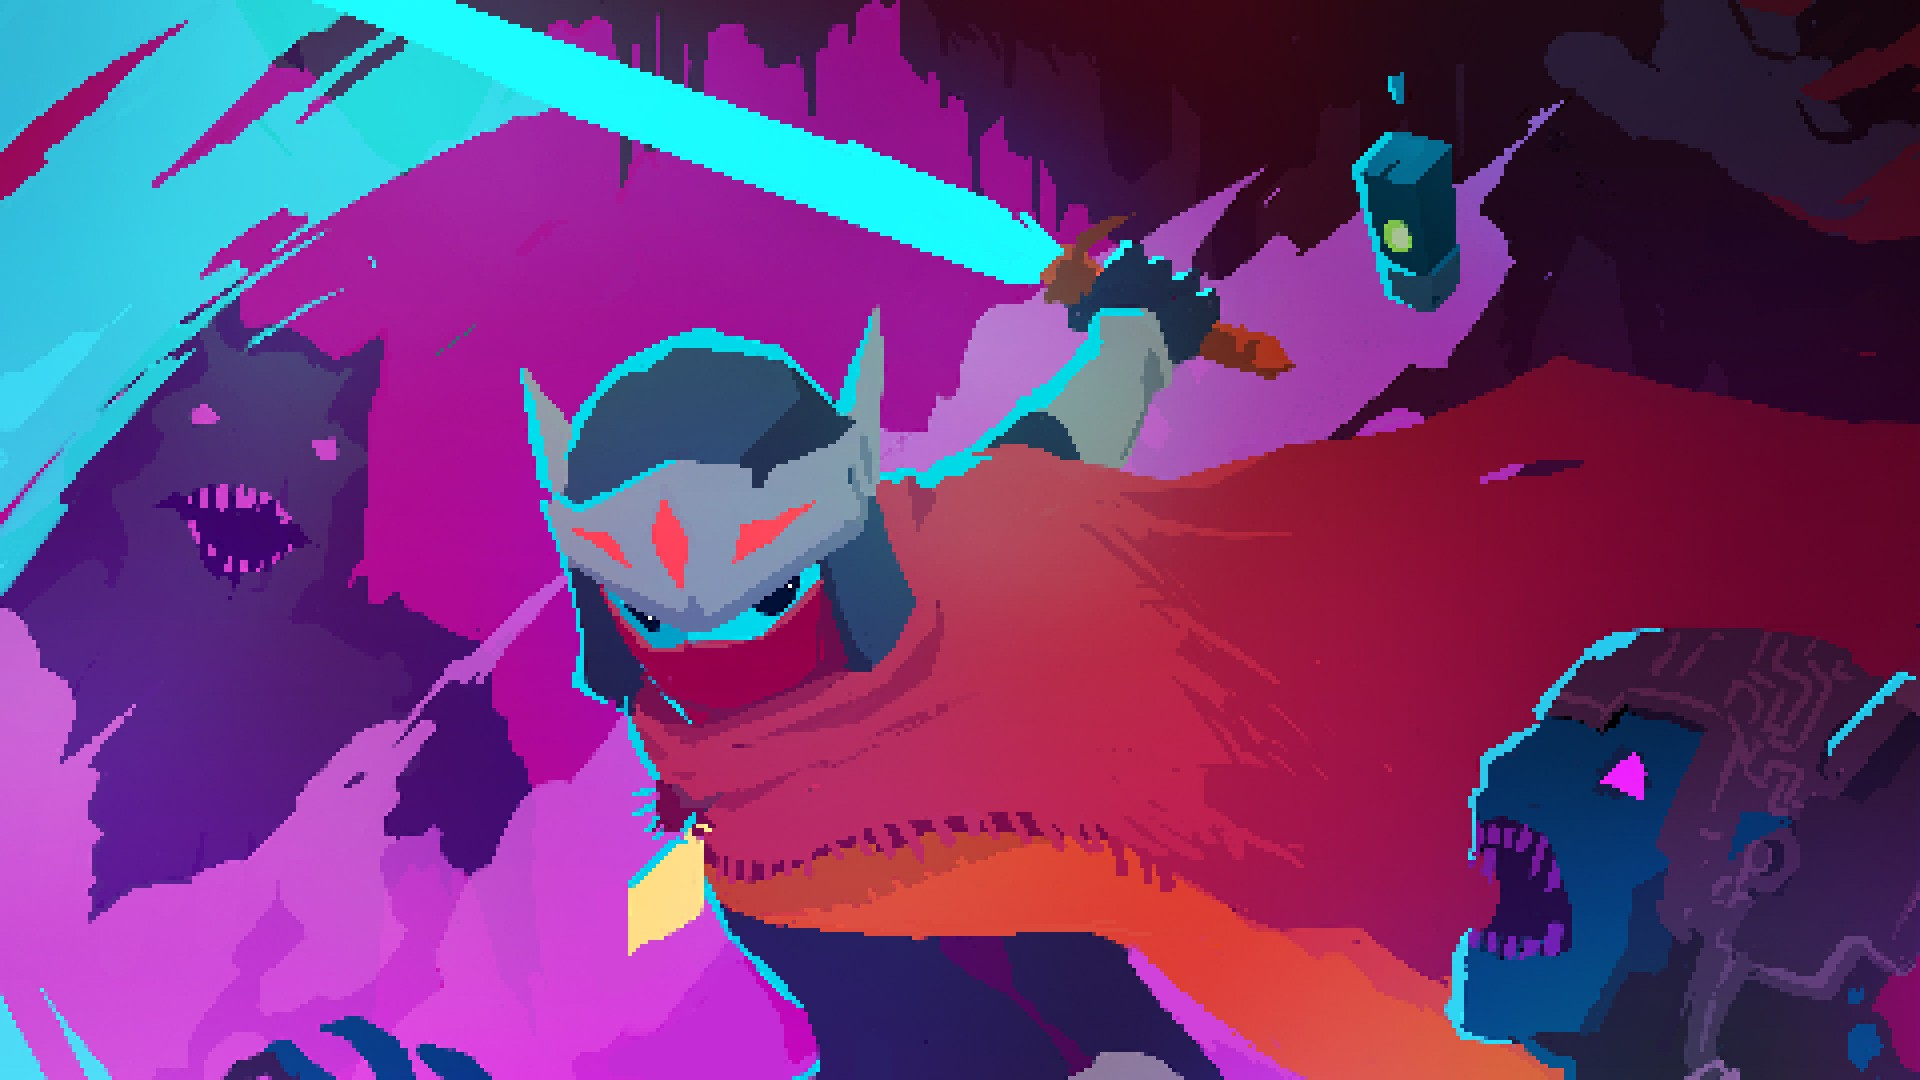 Hyper Light Drifter Wallpaper 1920x1080 Download Free